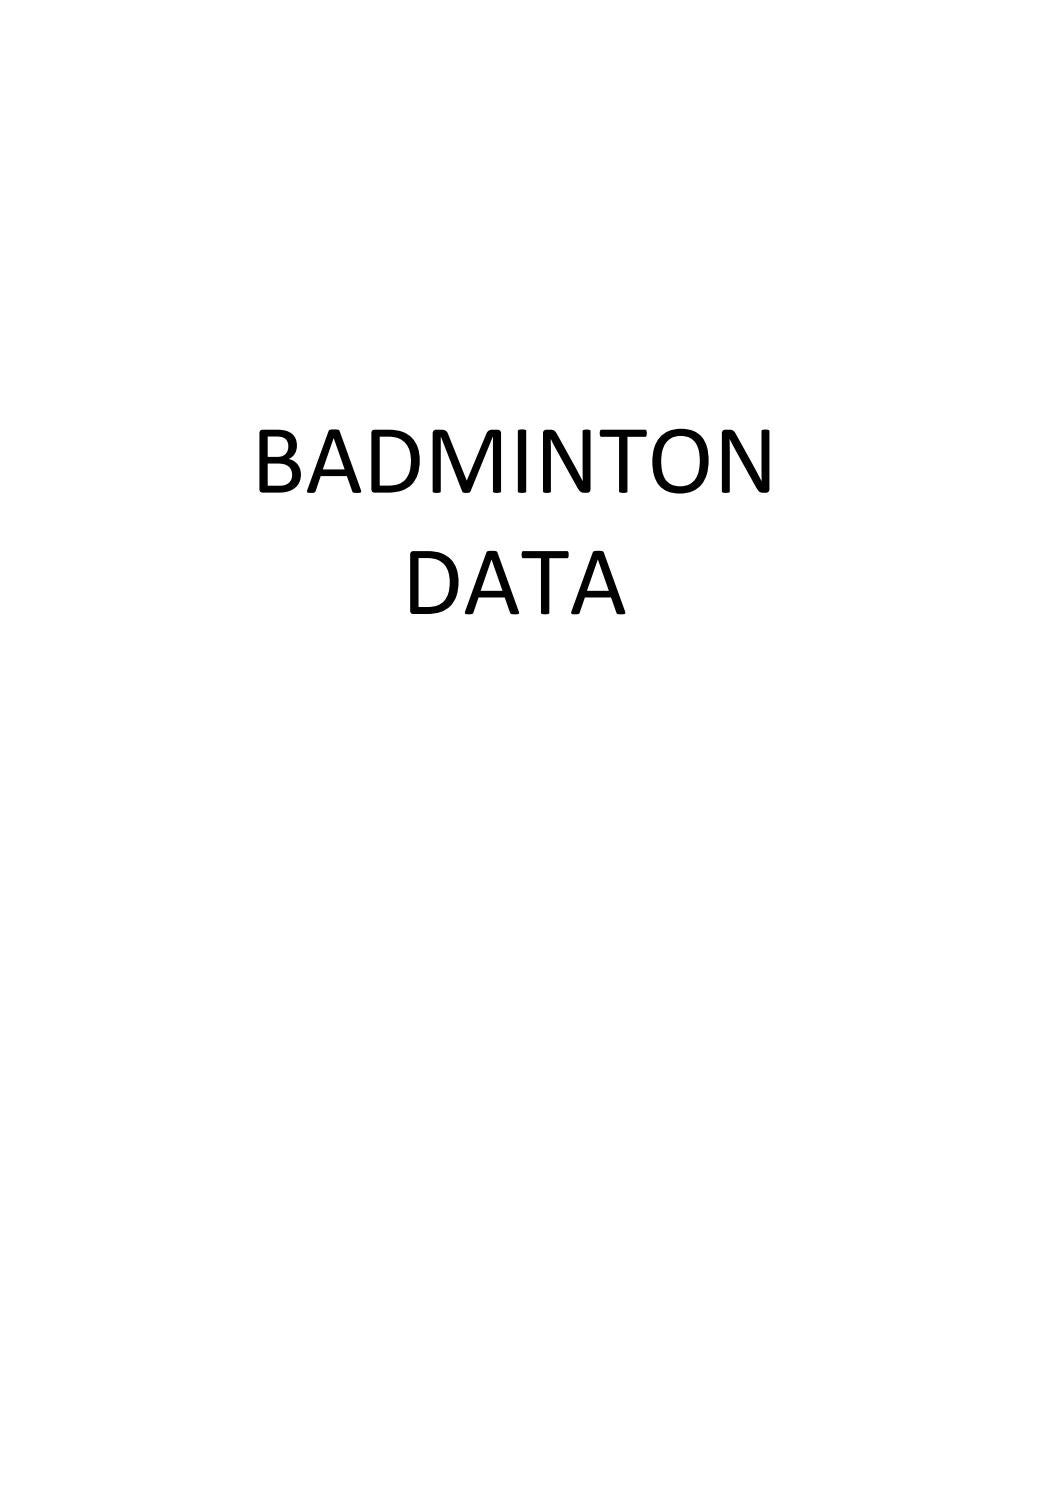 Badminton Data by René Born by Rene Born issuu